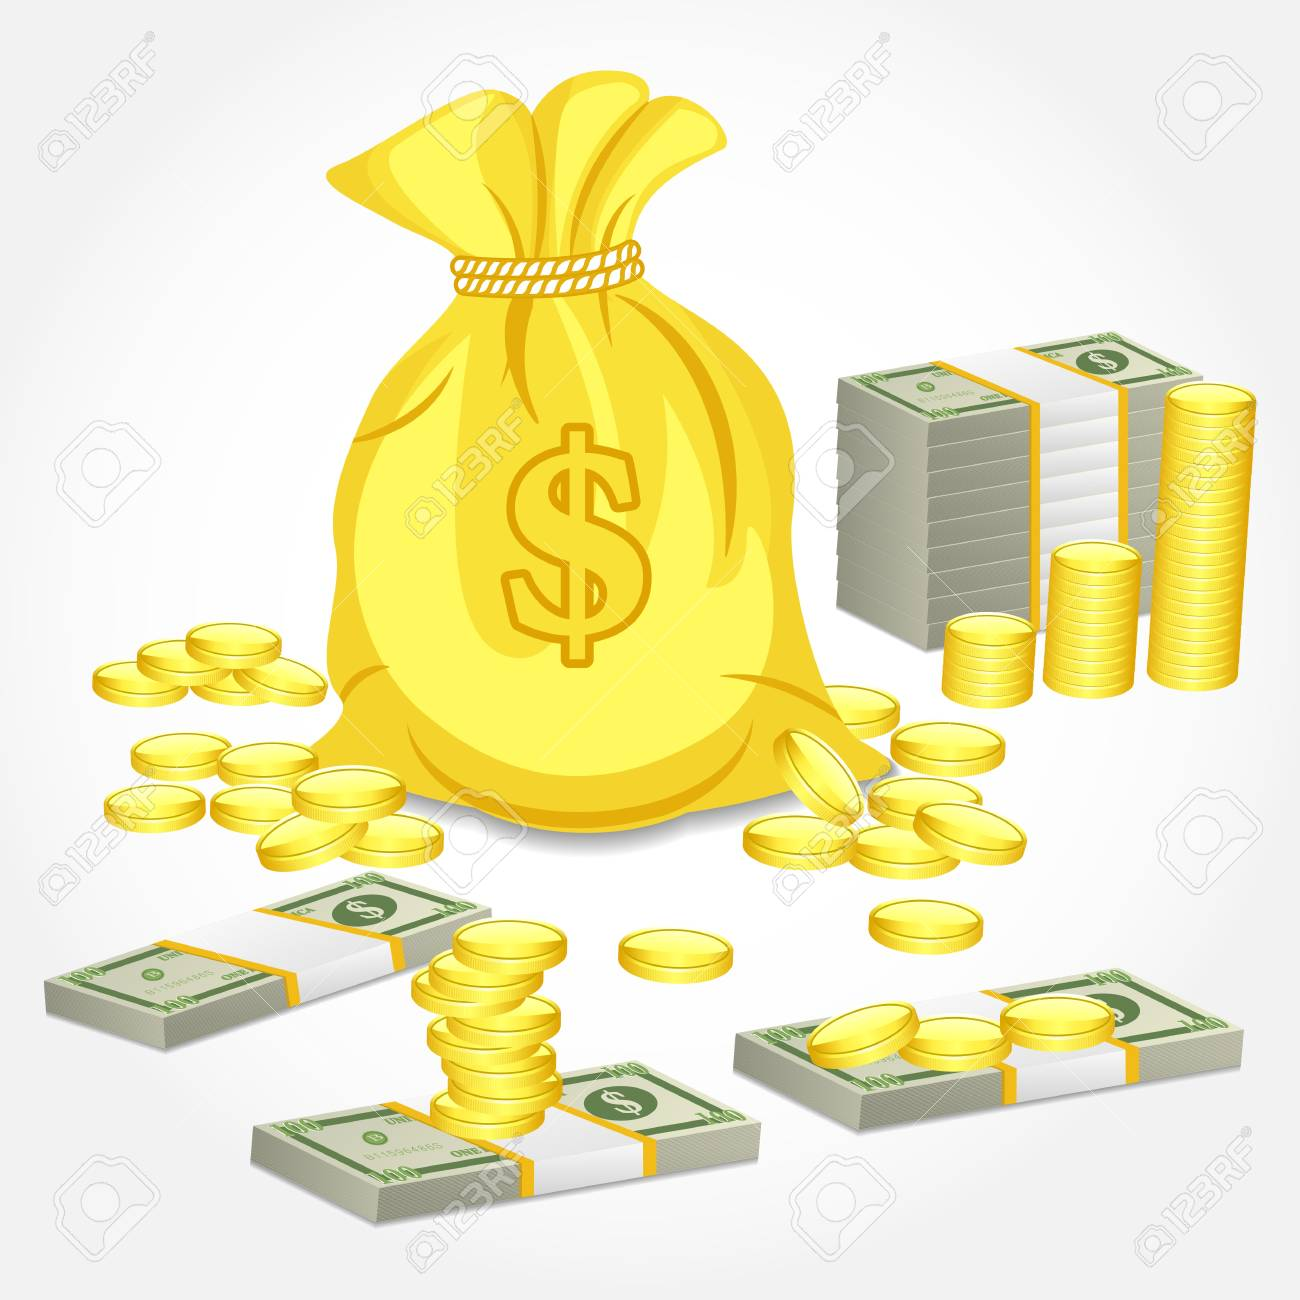 illustration of different form of money Stock Illustration - 14388215